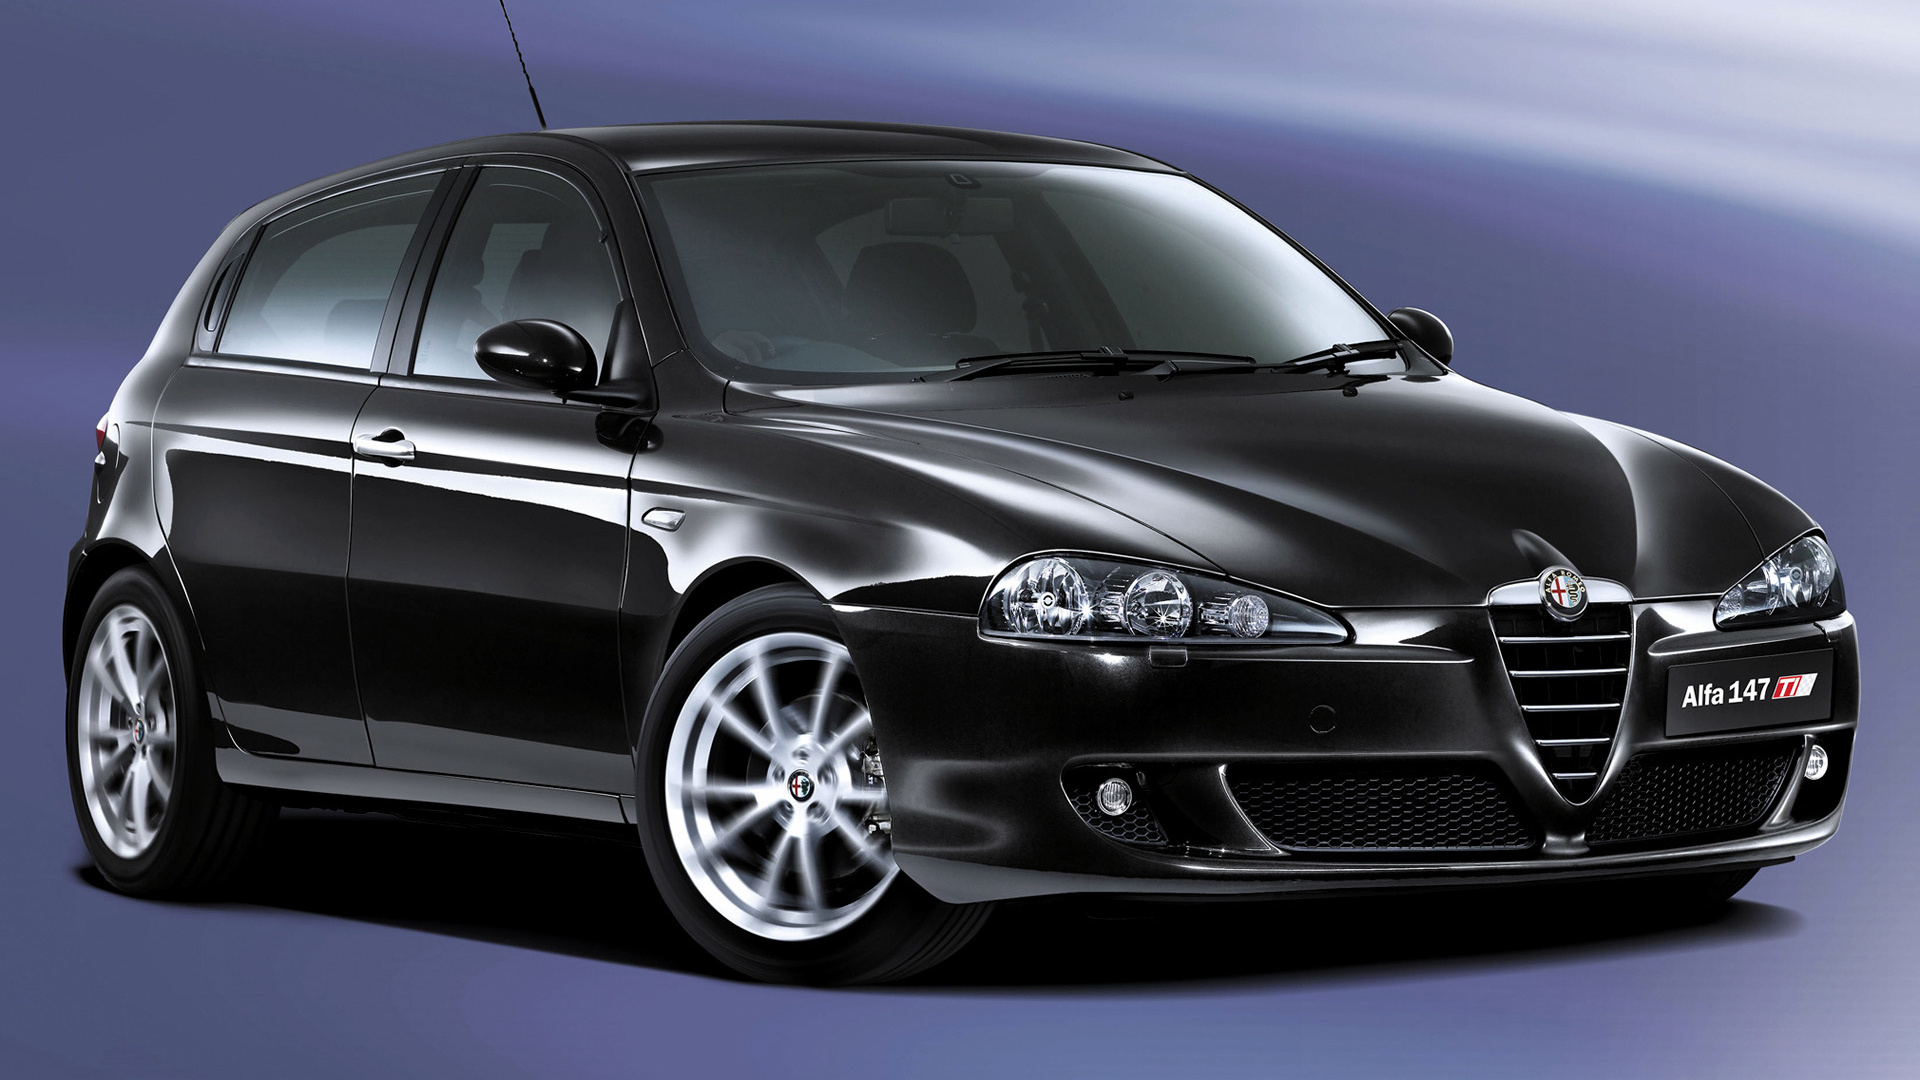 2006 Alfa Romeo 147 Ti 5 Door Jp Wallpapers And Hd Images Car Pixel